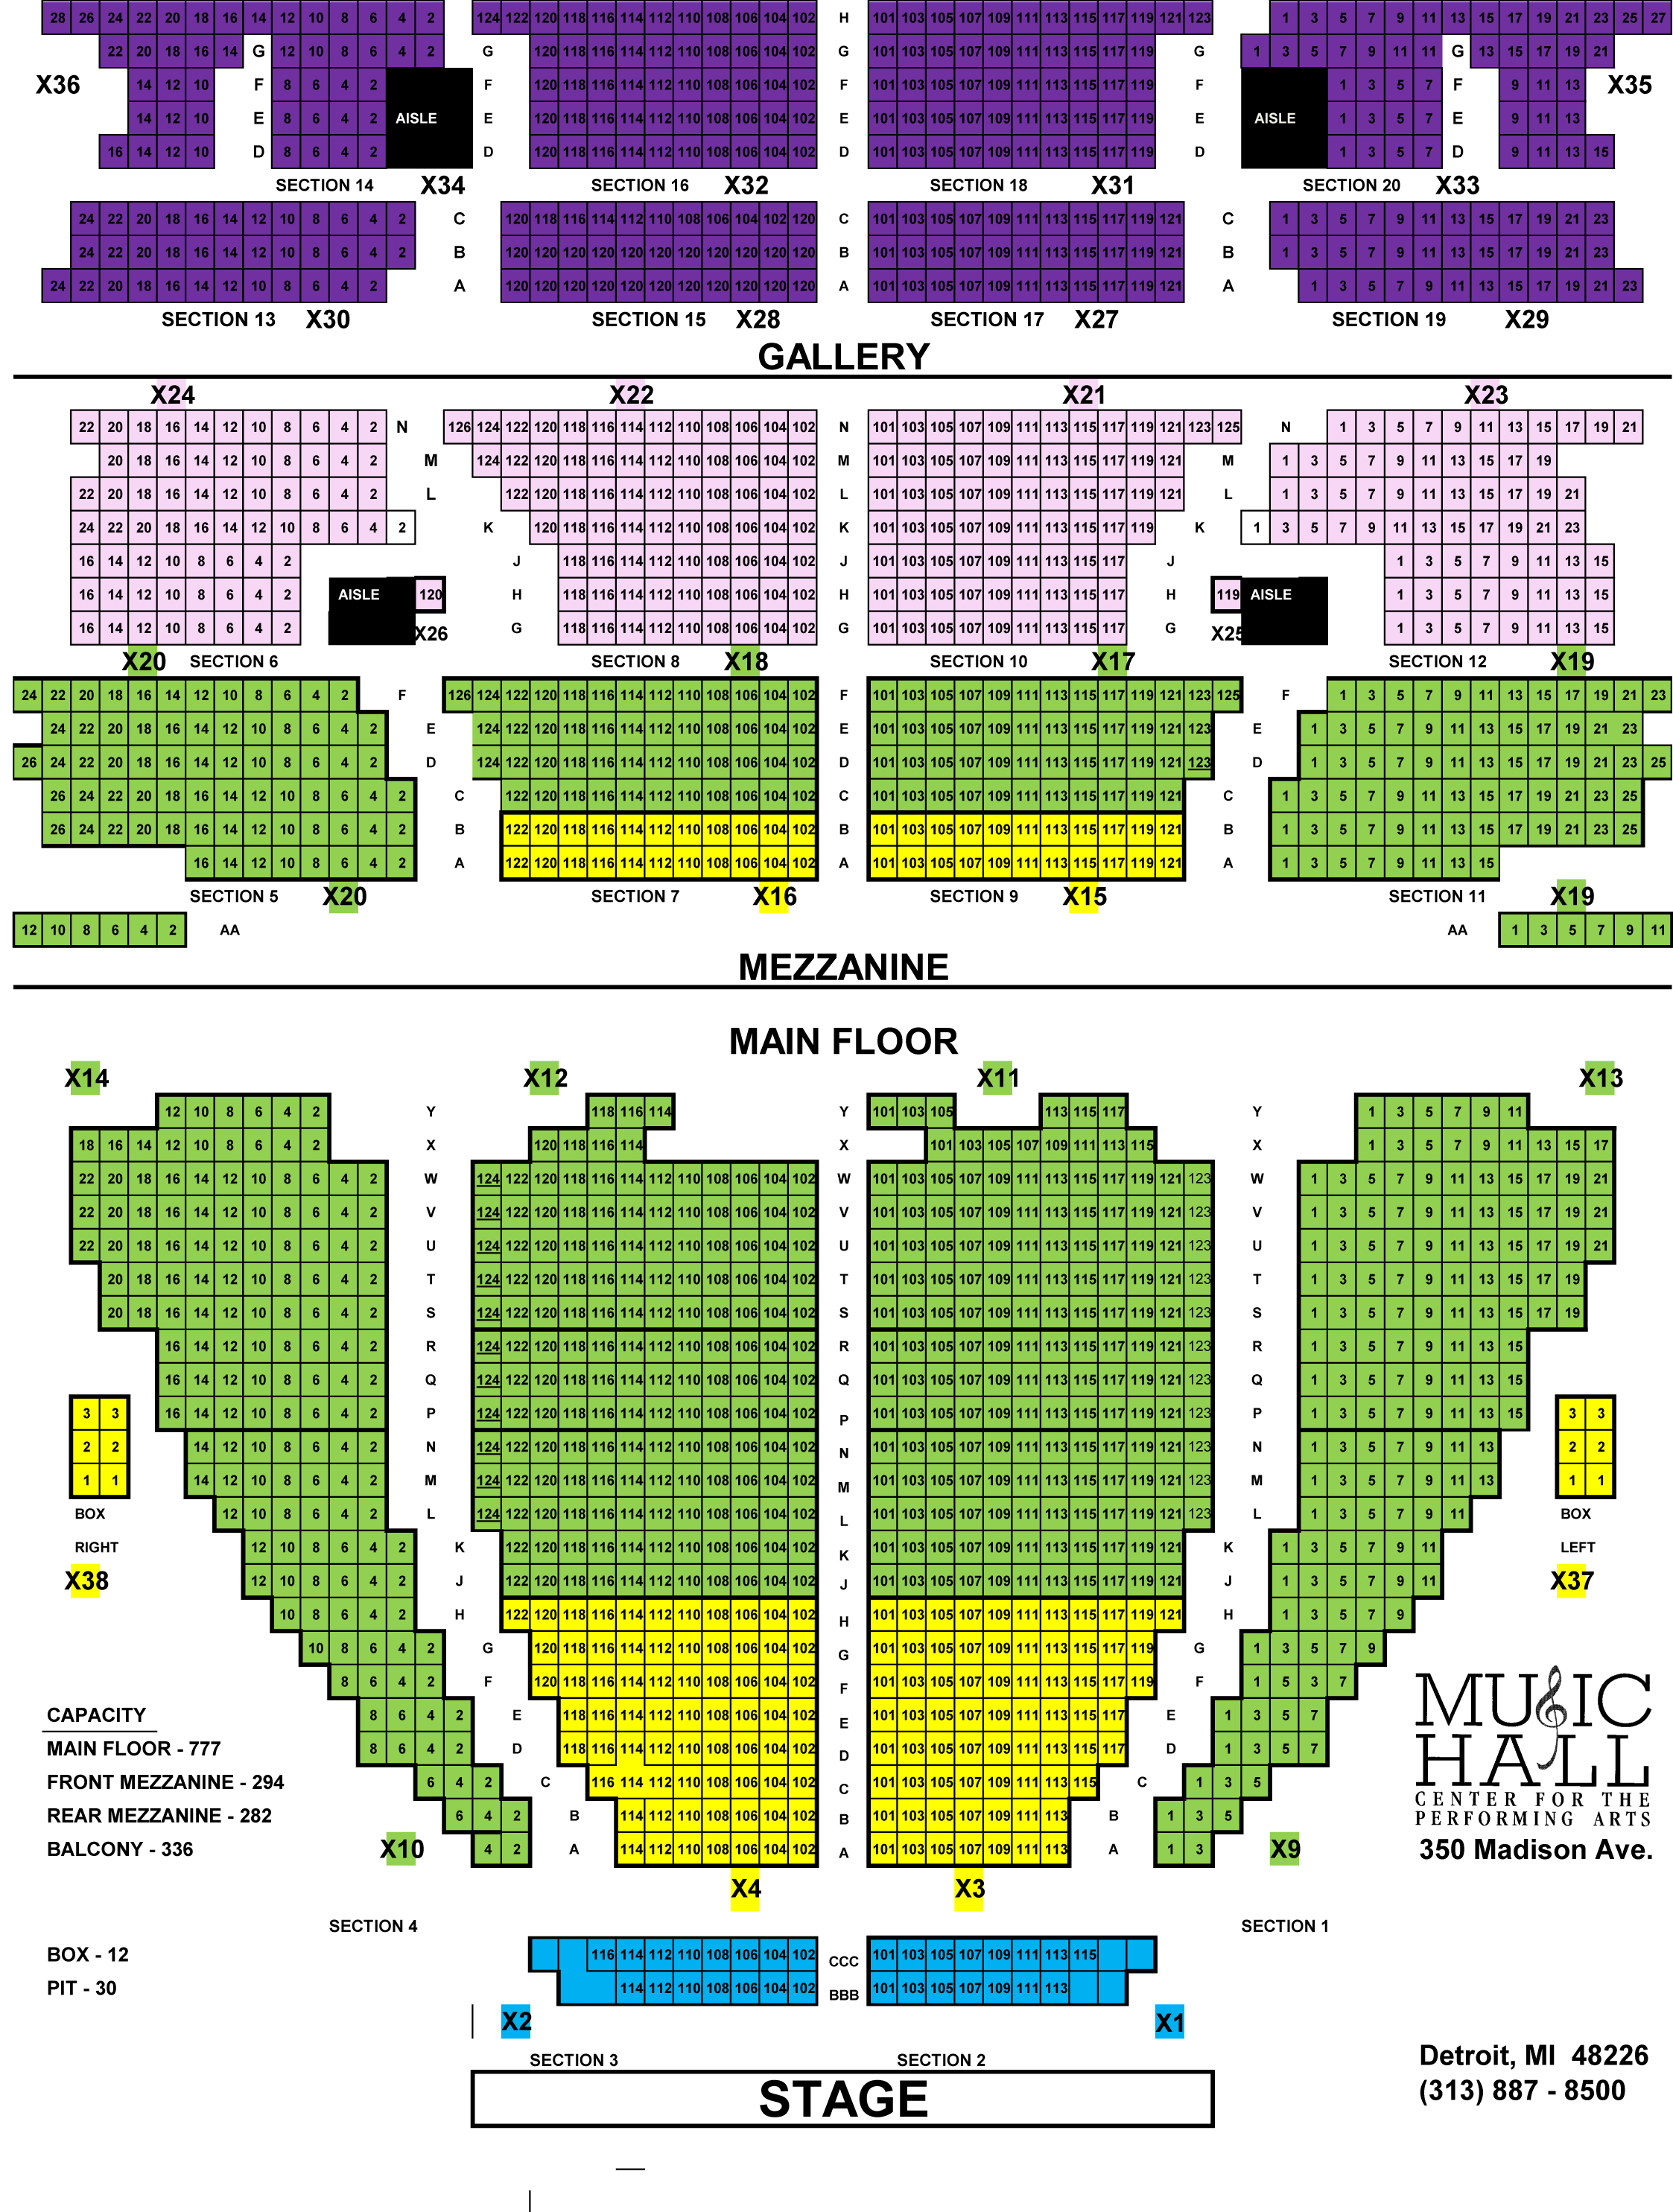 Private Events Music Hall Seating Chart